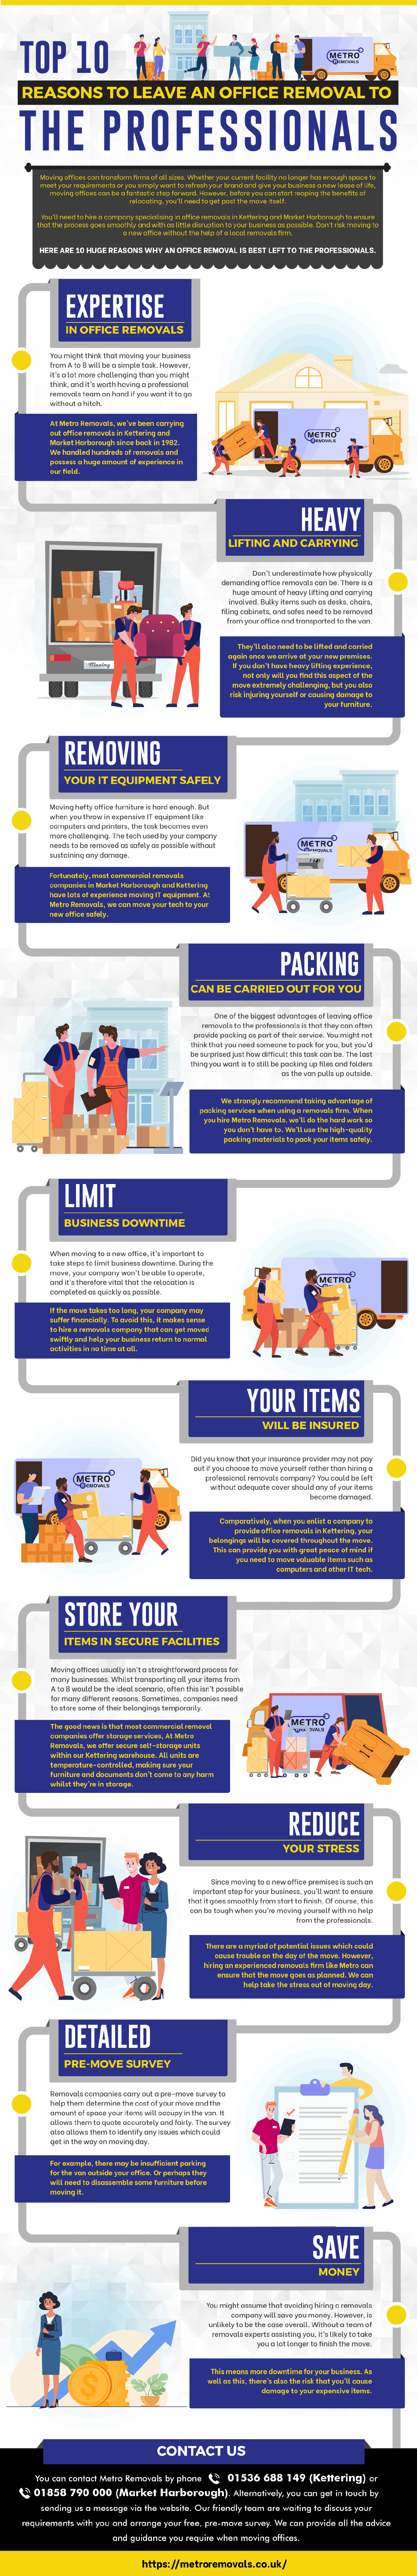 Top 10 reasons to leave an office removal to the professionals [Infographic]